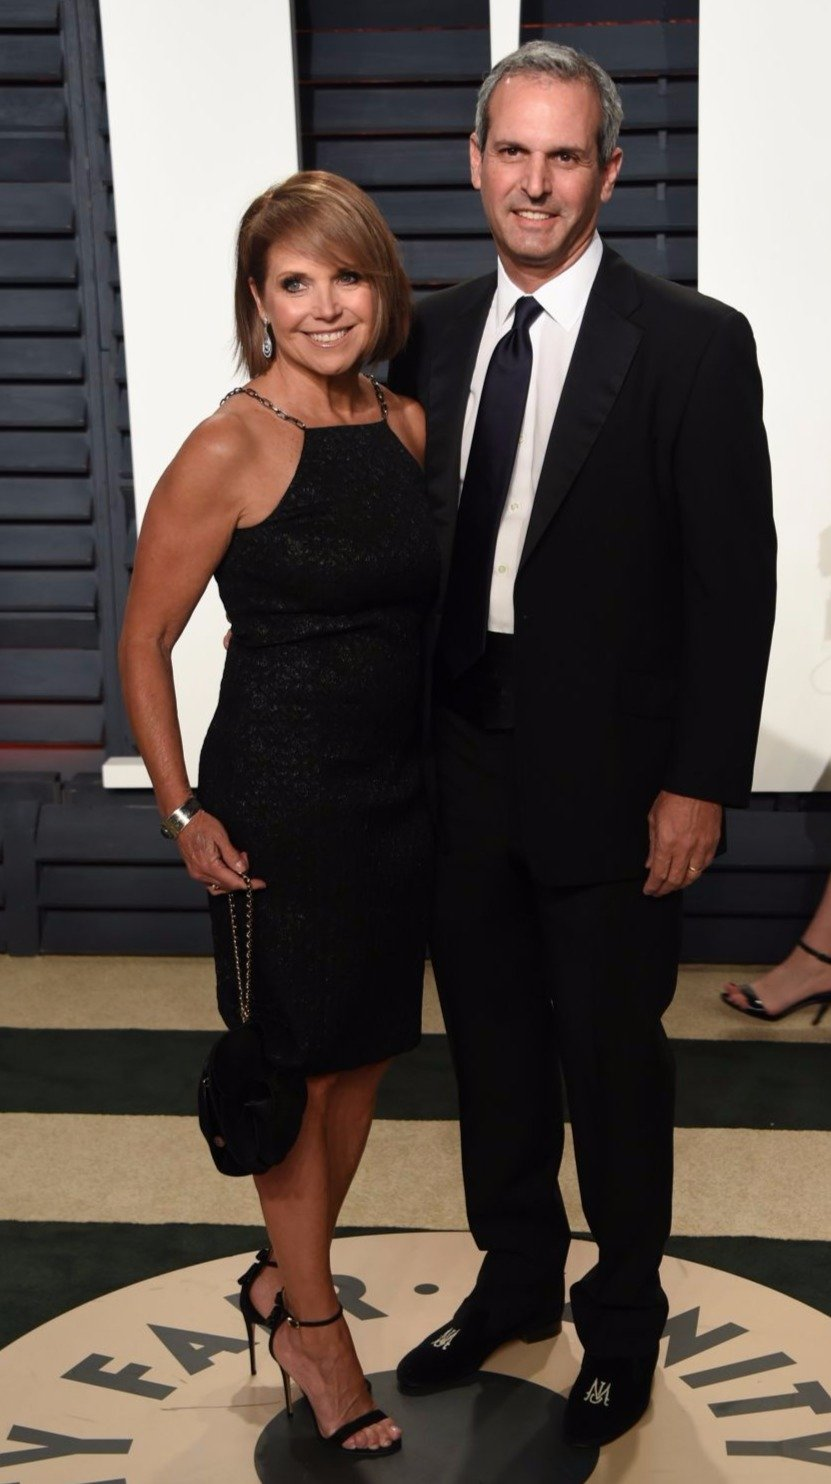 Katie Couric's husband John Molner hugging Katie with one hand while smiling for the picture